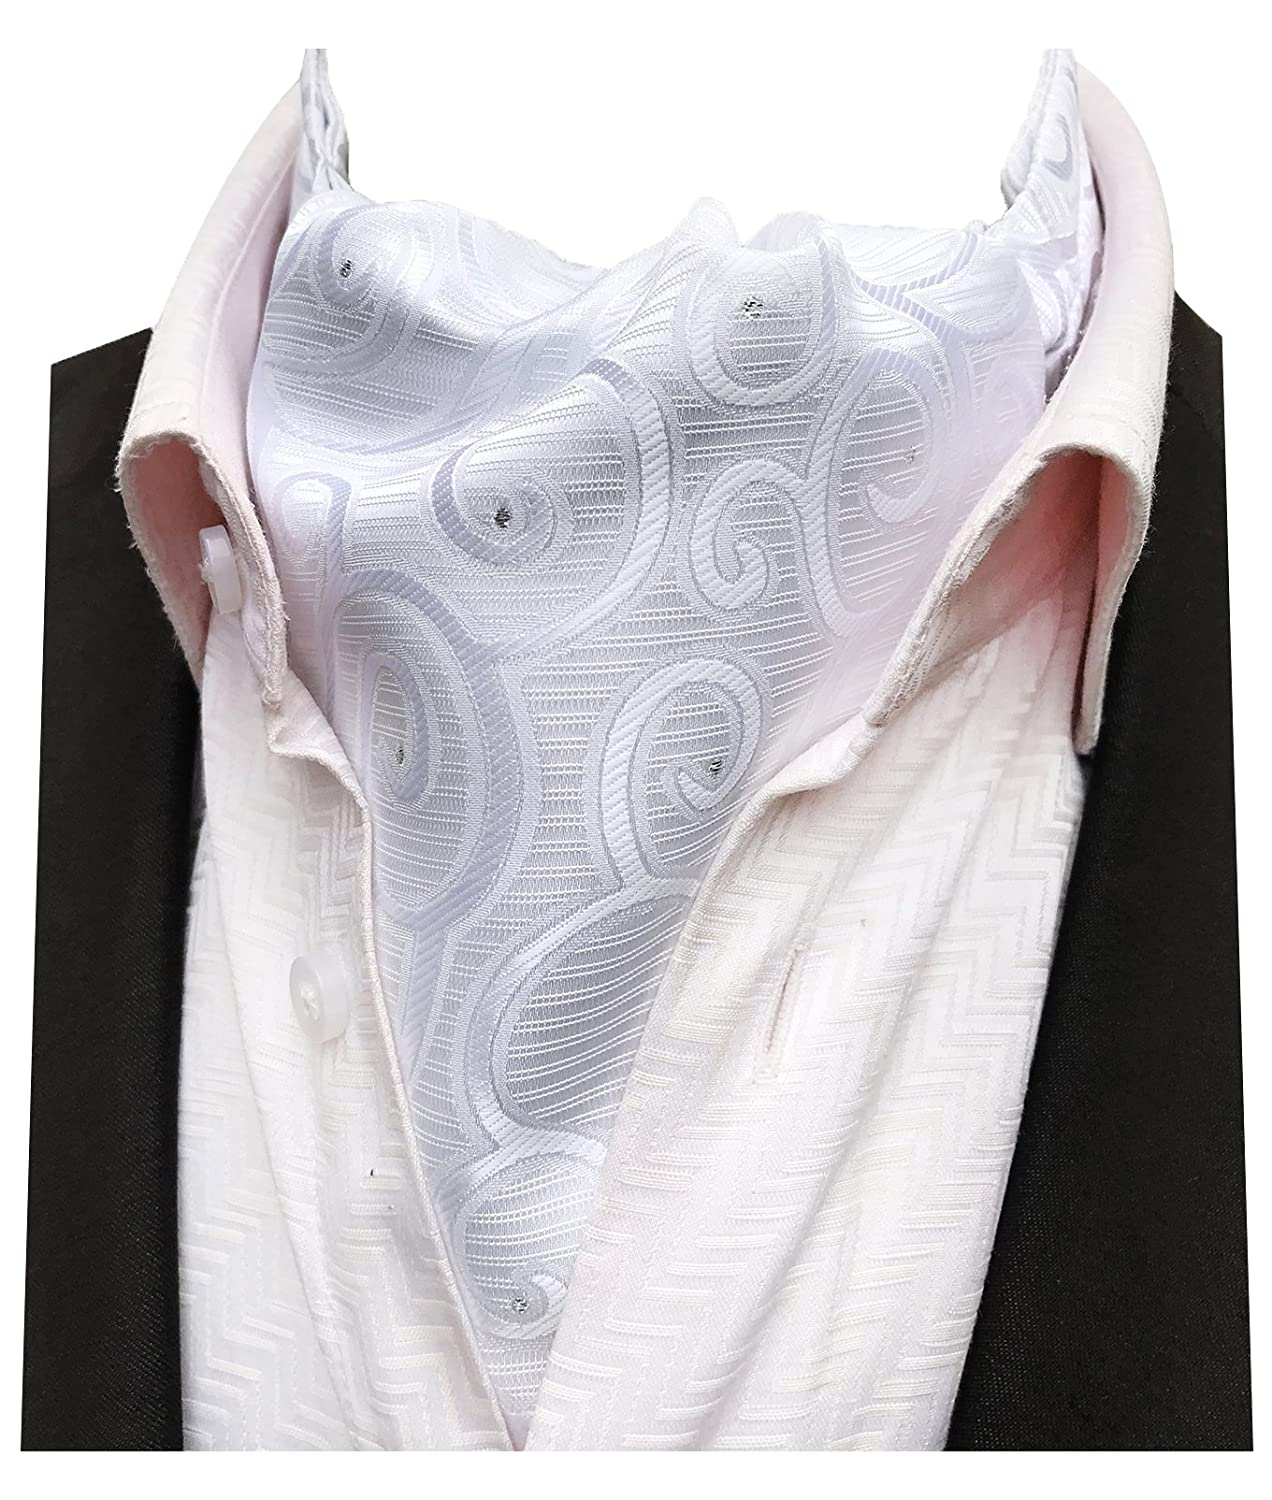 MENDENG Men's Black White Paisley Jacquard Woven Silk Self Cravat Neckties Ascot AVNTF0491